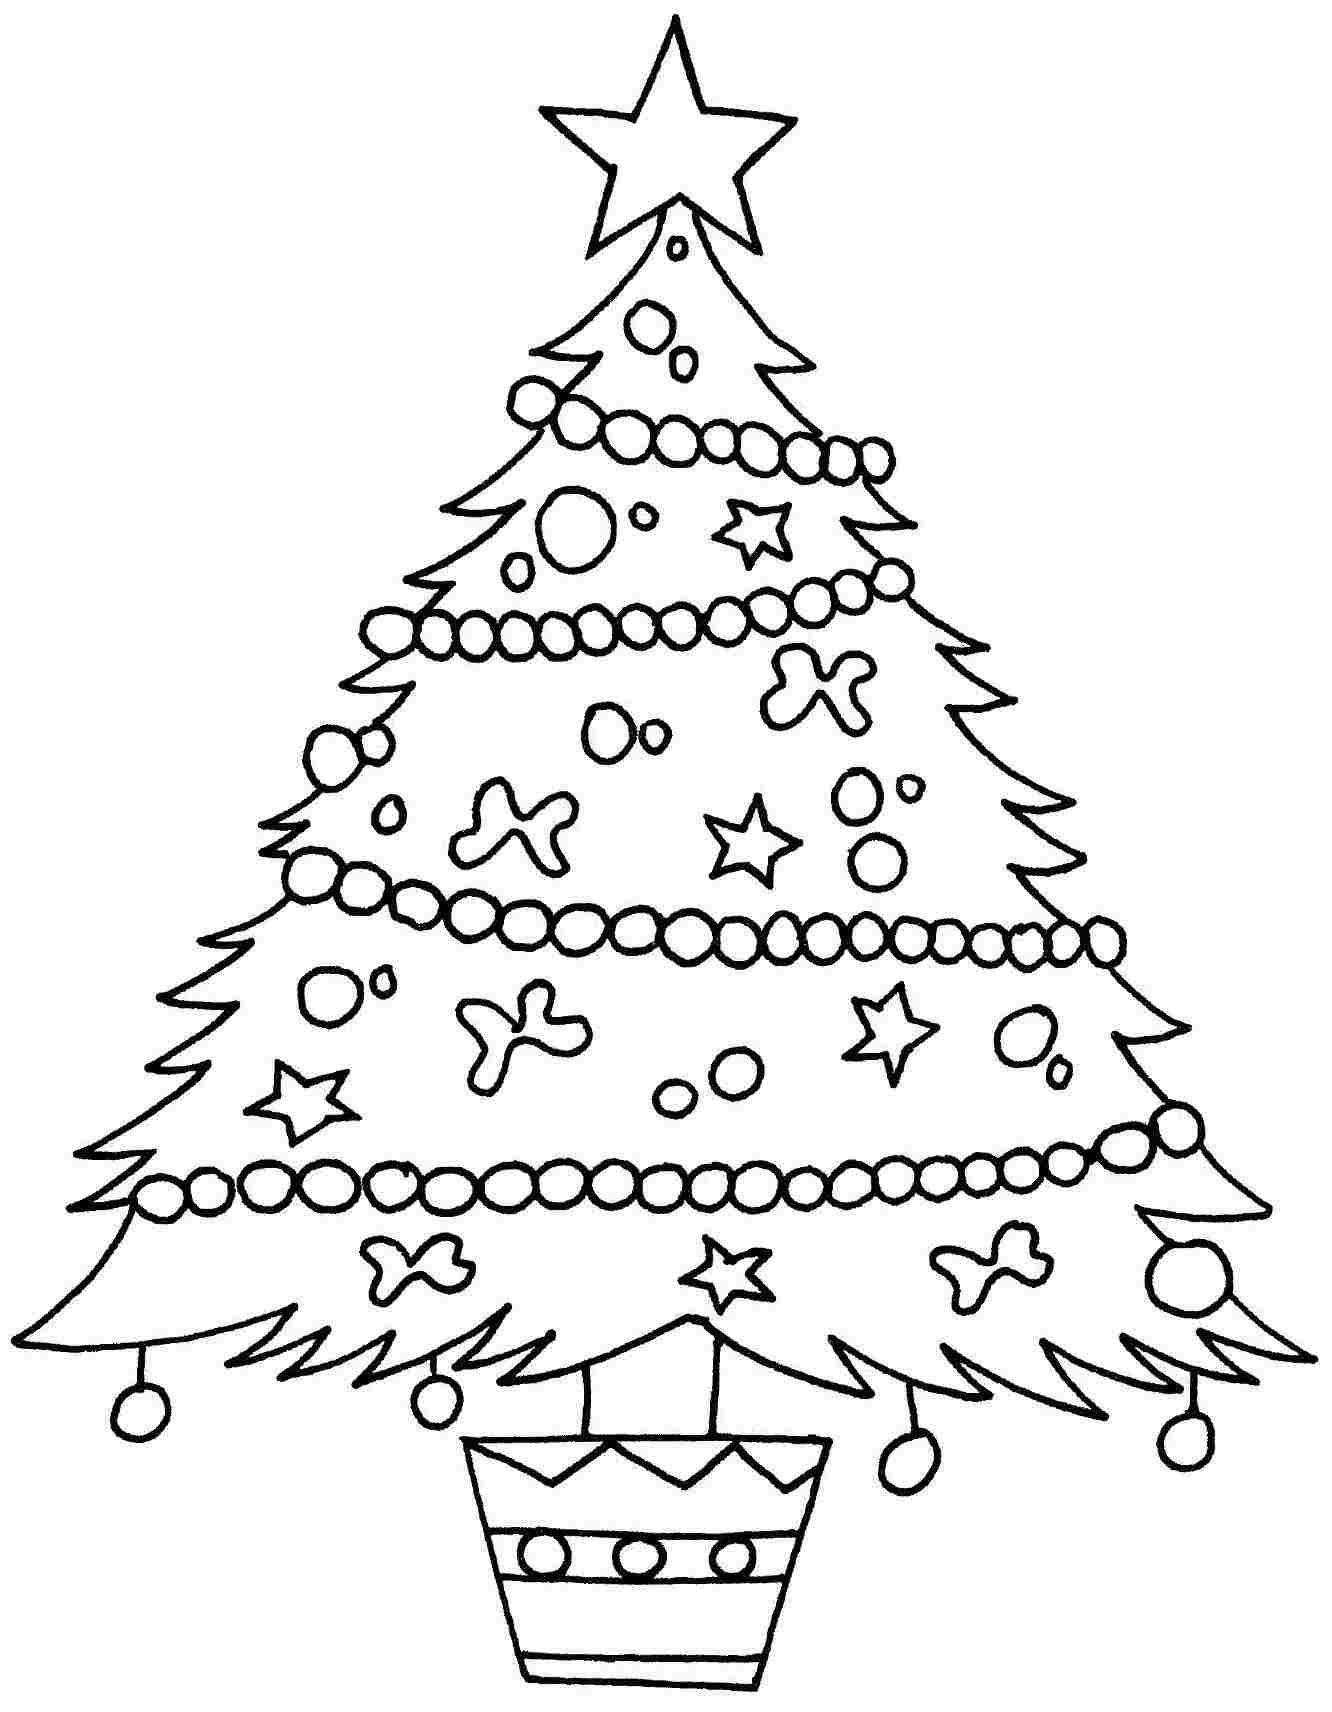 1332x1712 Christmas Tree Pencil Art Picture Gallery Christmas Tree Pencil